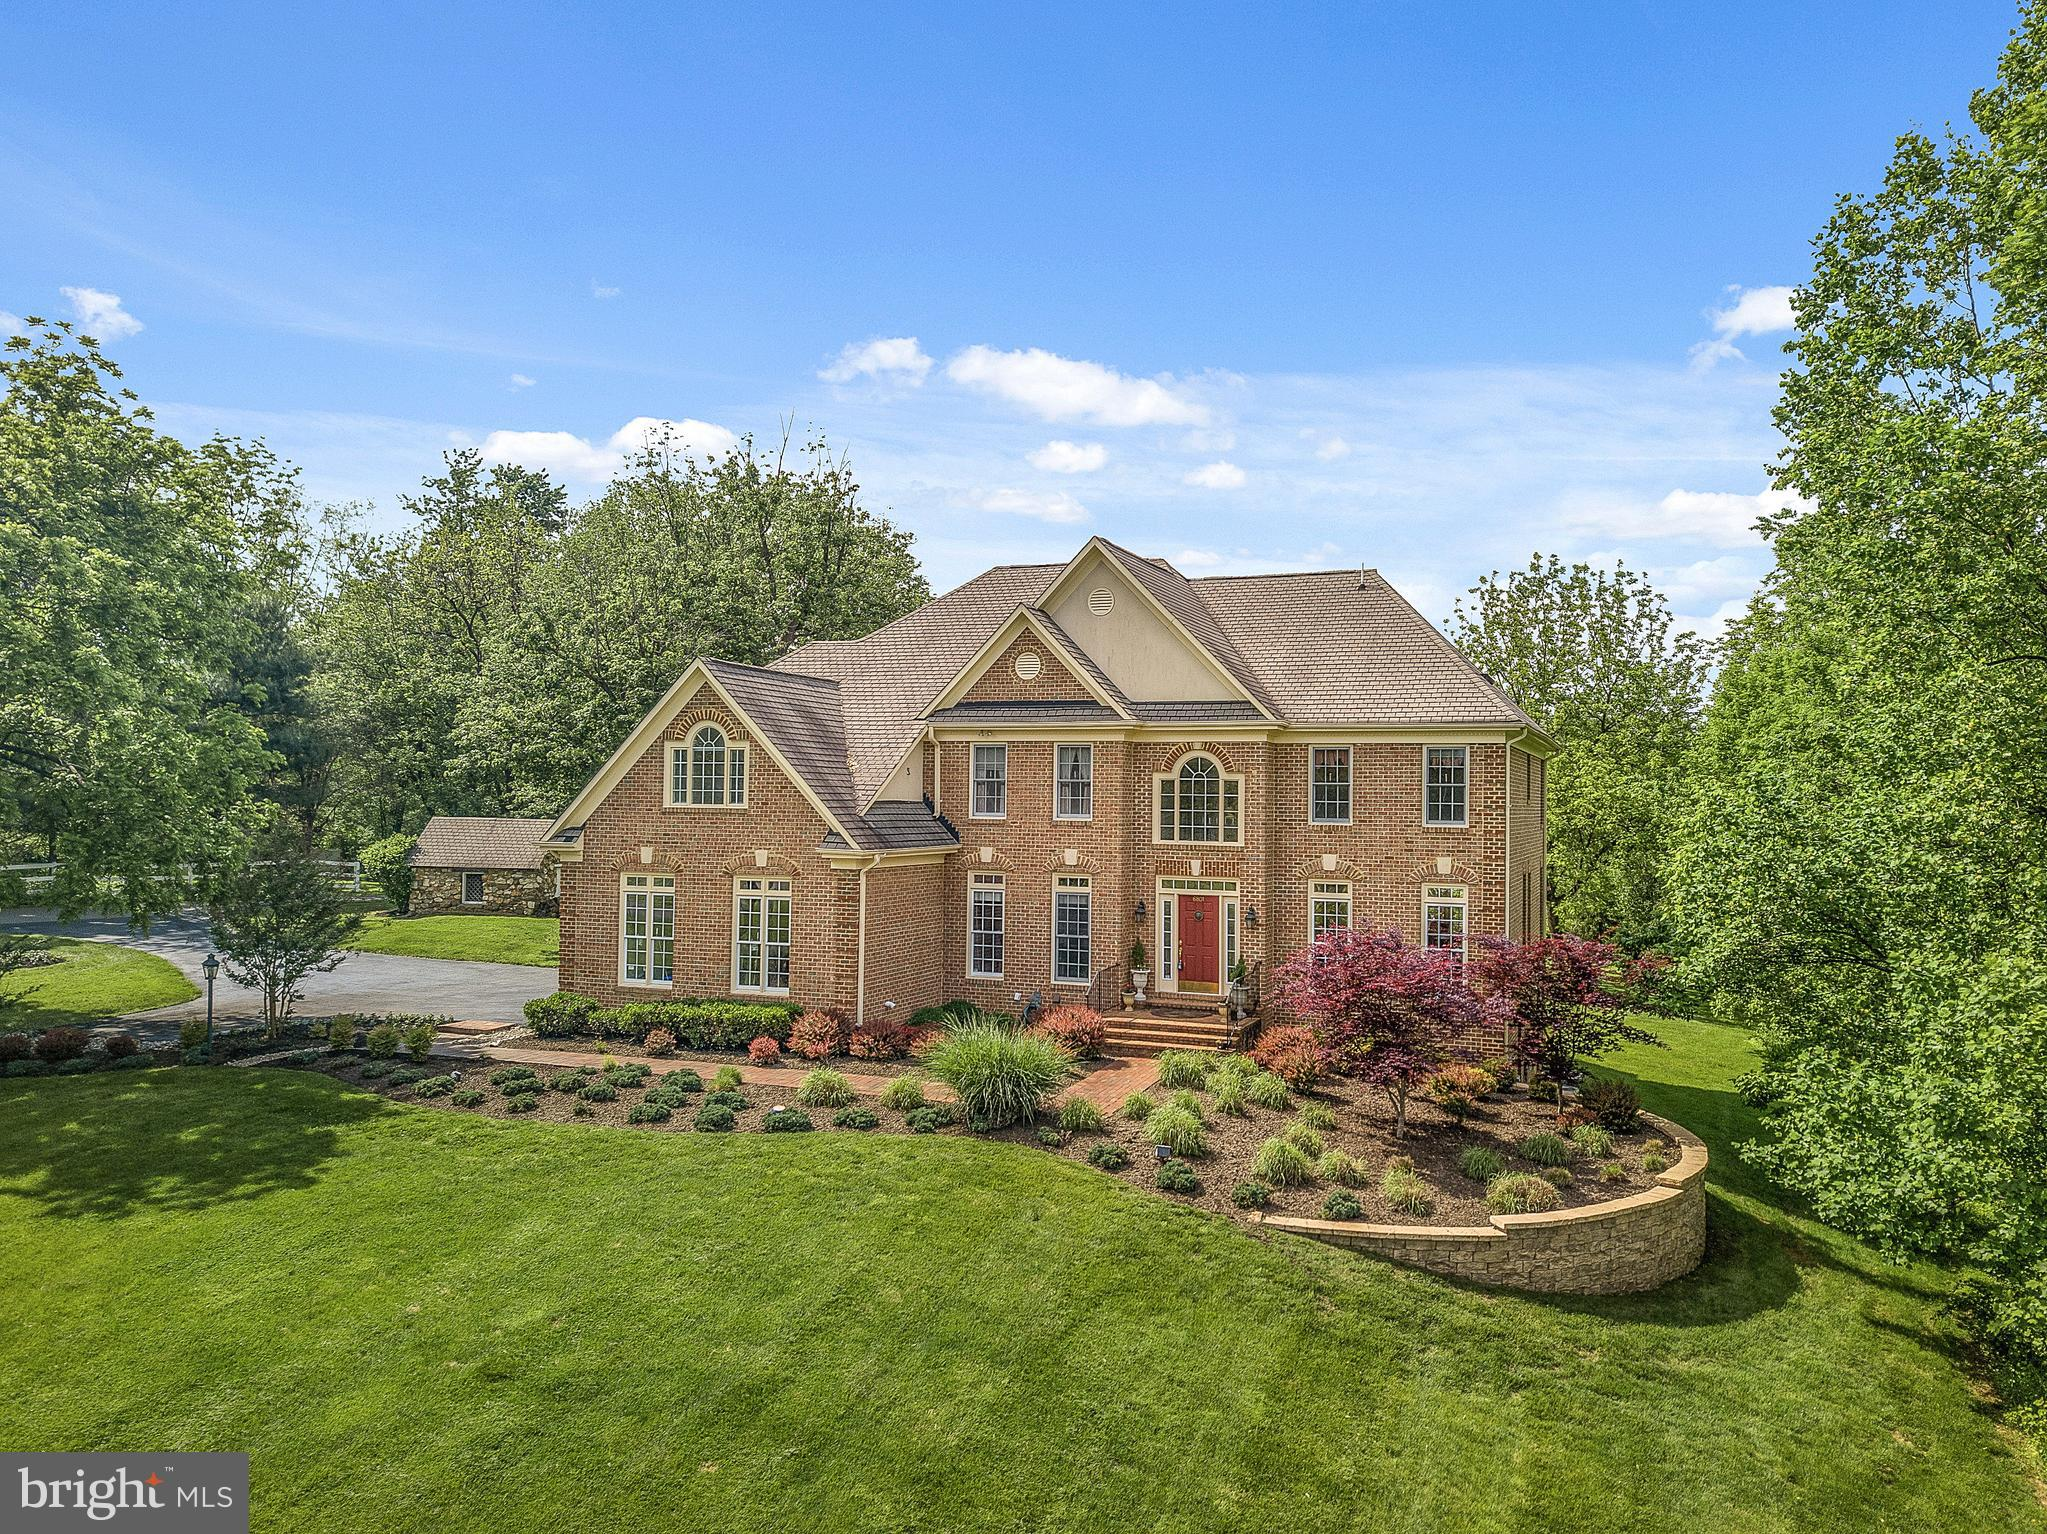 6801 NEEDWOOD ROAD, DERWOOD, MD 20855